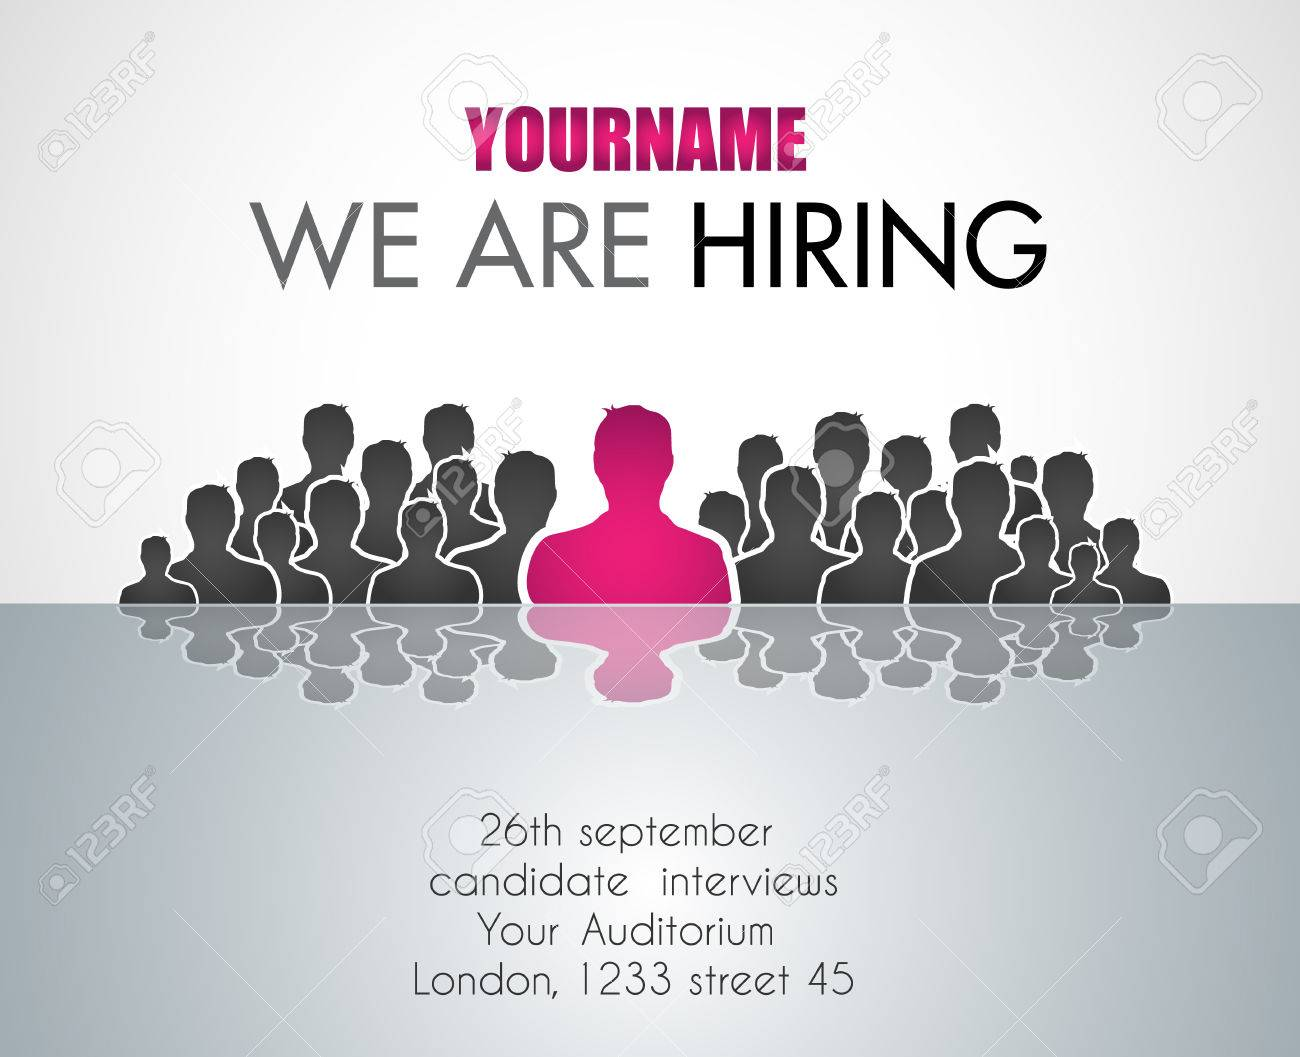 Poster design jobs london - Vector We Are Hiring Background For Your Hiring Posters And Flyer Simple And Clean Design With A Lot Of Human Shapes And Space For Your Job Details